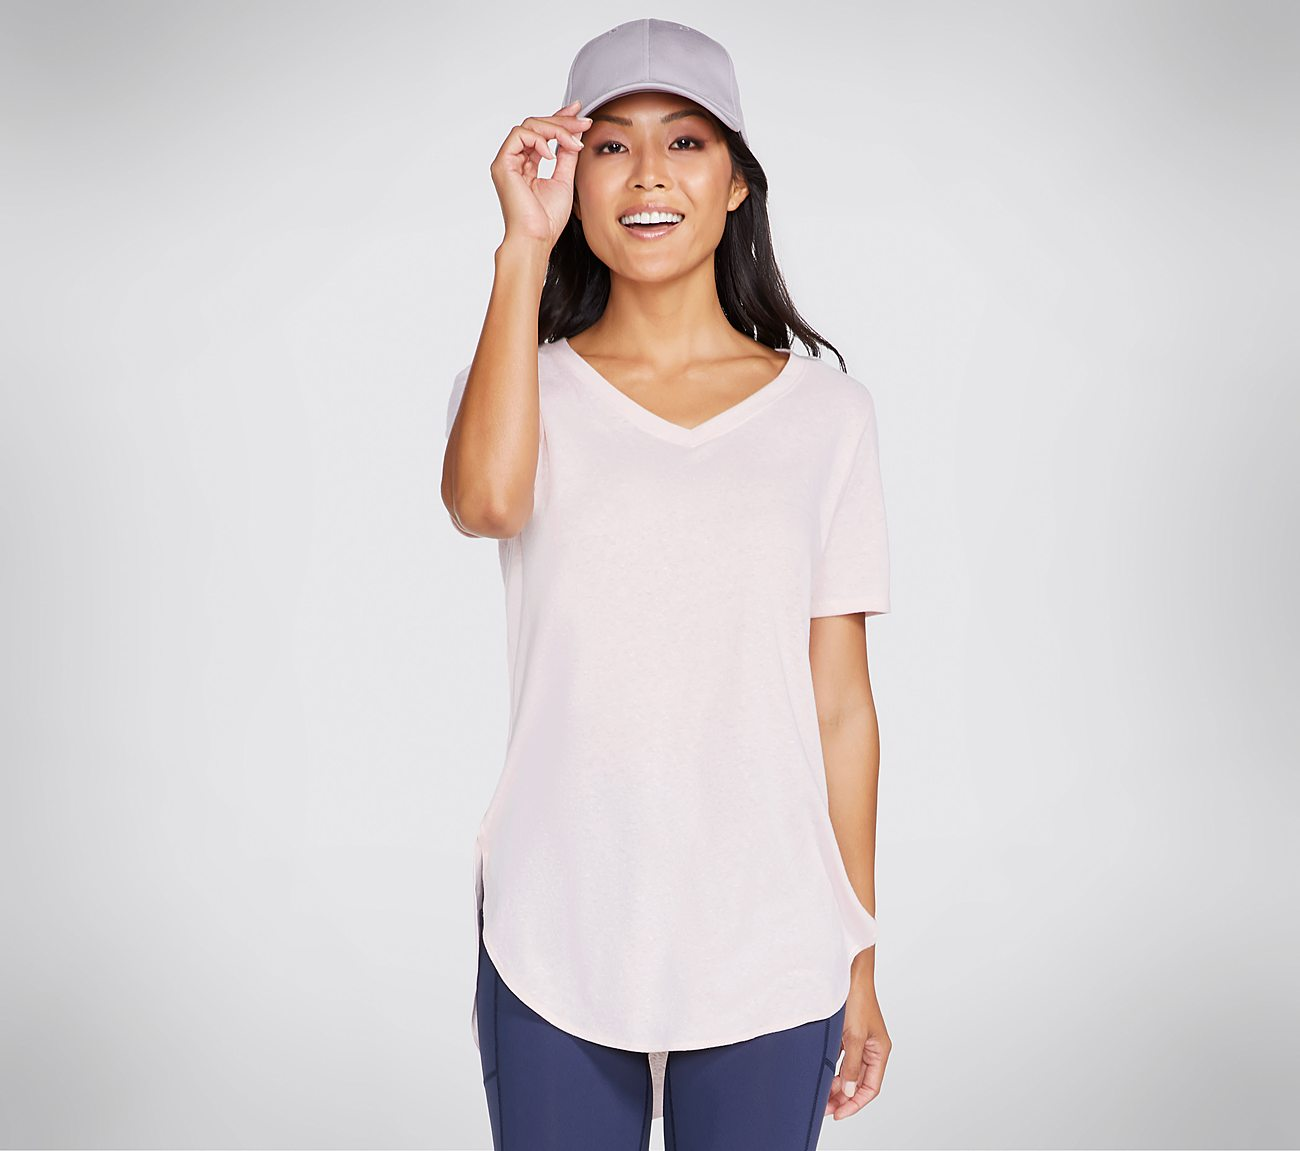 Skechers Apparel Blissful Tunic Tee Shirt